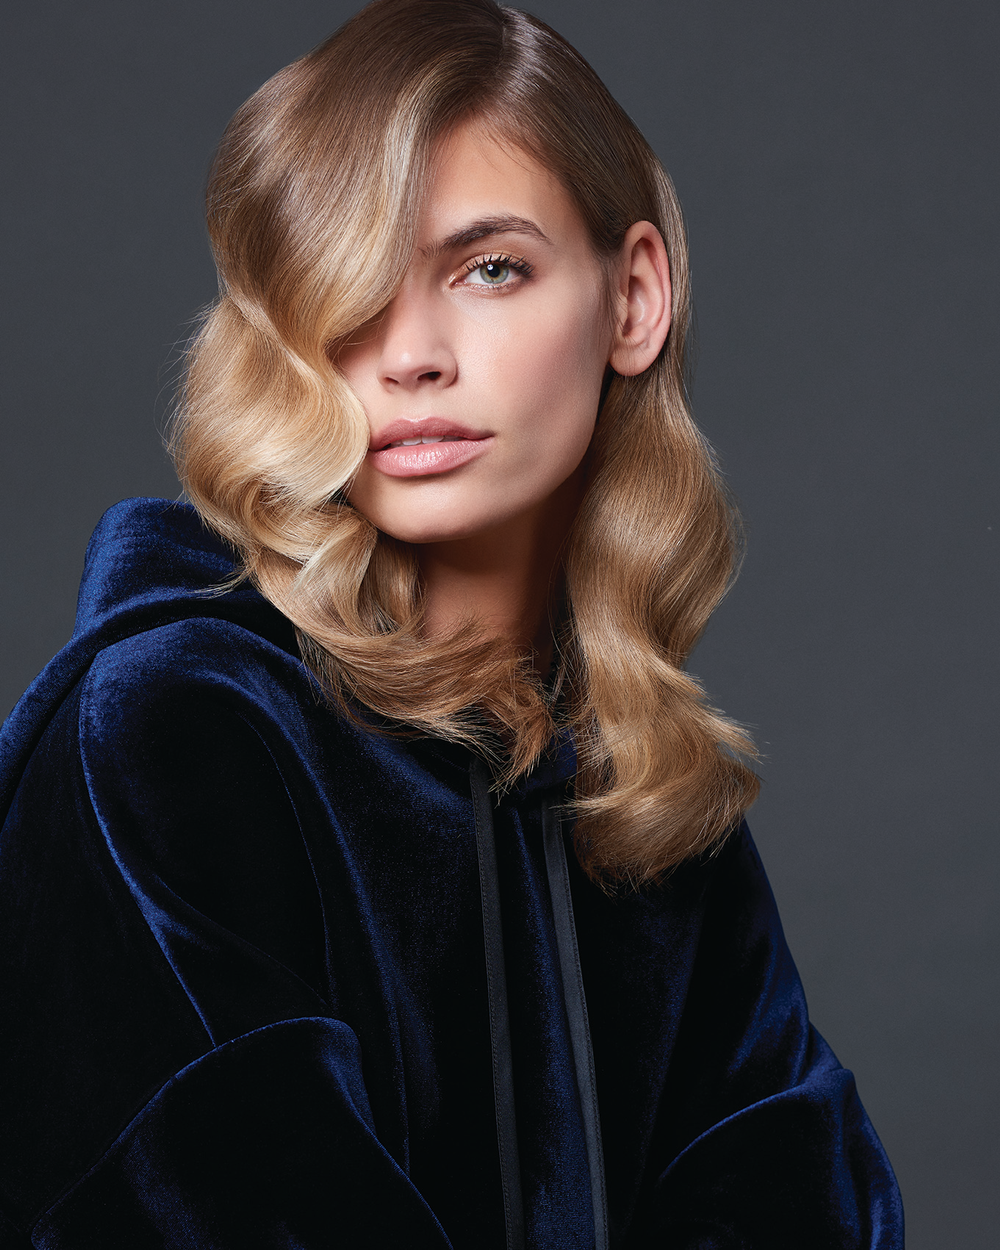 Balayage requires a shift in perception about what hair color should be--namely, filling in dark spaces and bringing bright pops of color to the ends.